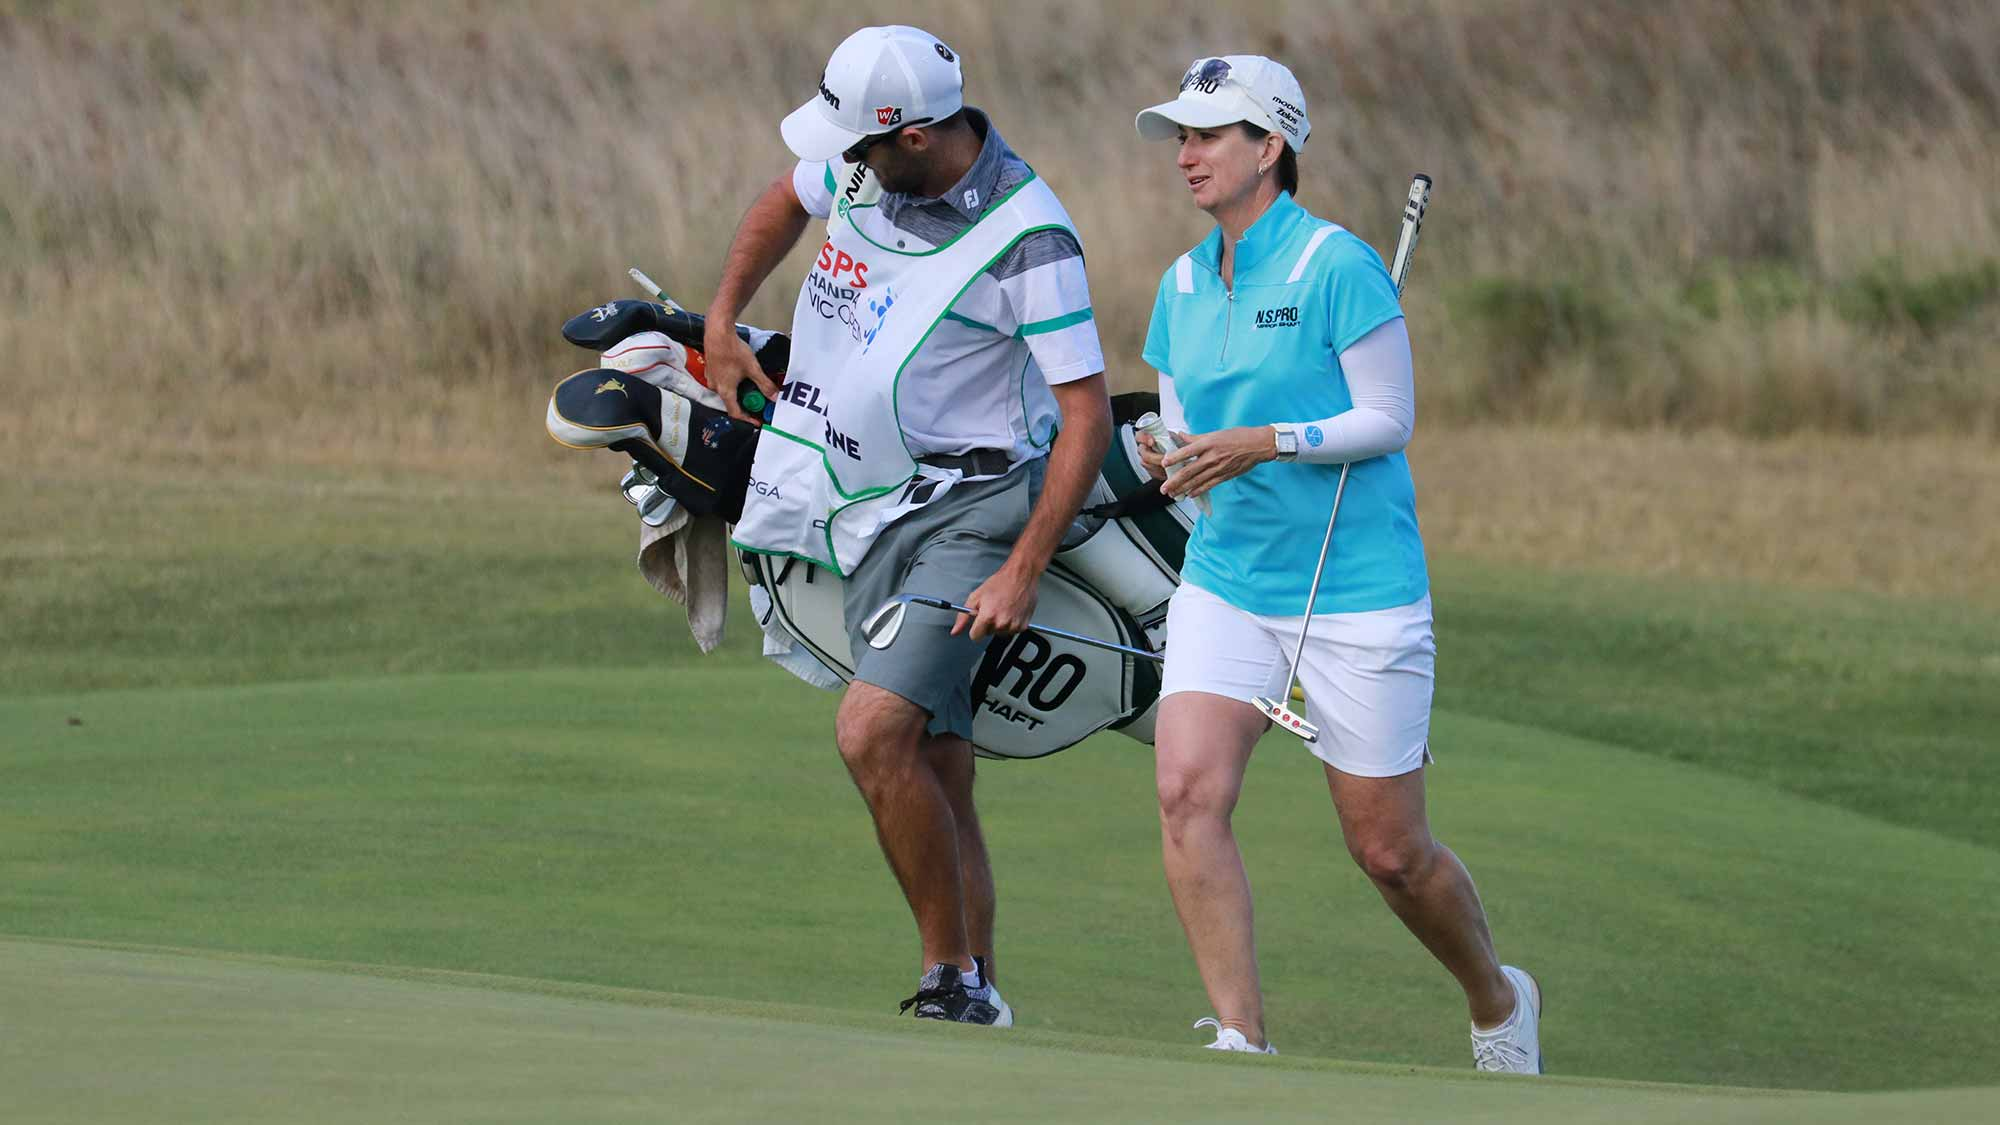 Karrie Webb walks with her caddie during the second round of the ISPS Handa Vic Open in Geelong, Australia on February 8, 2019